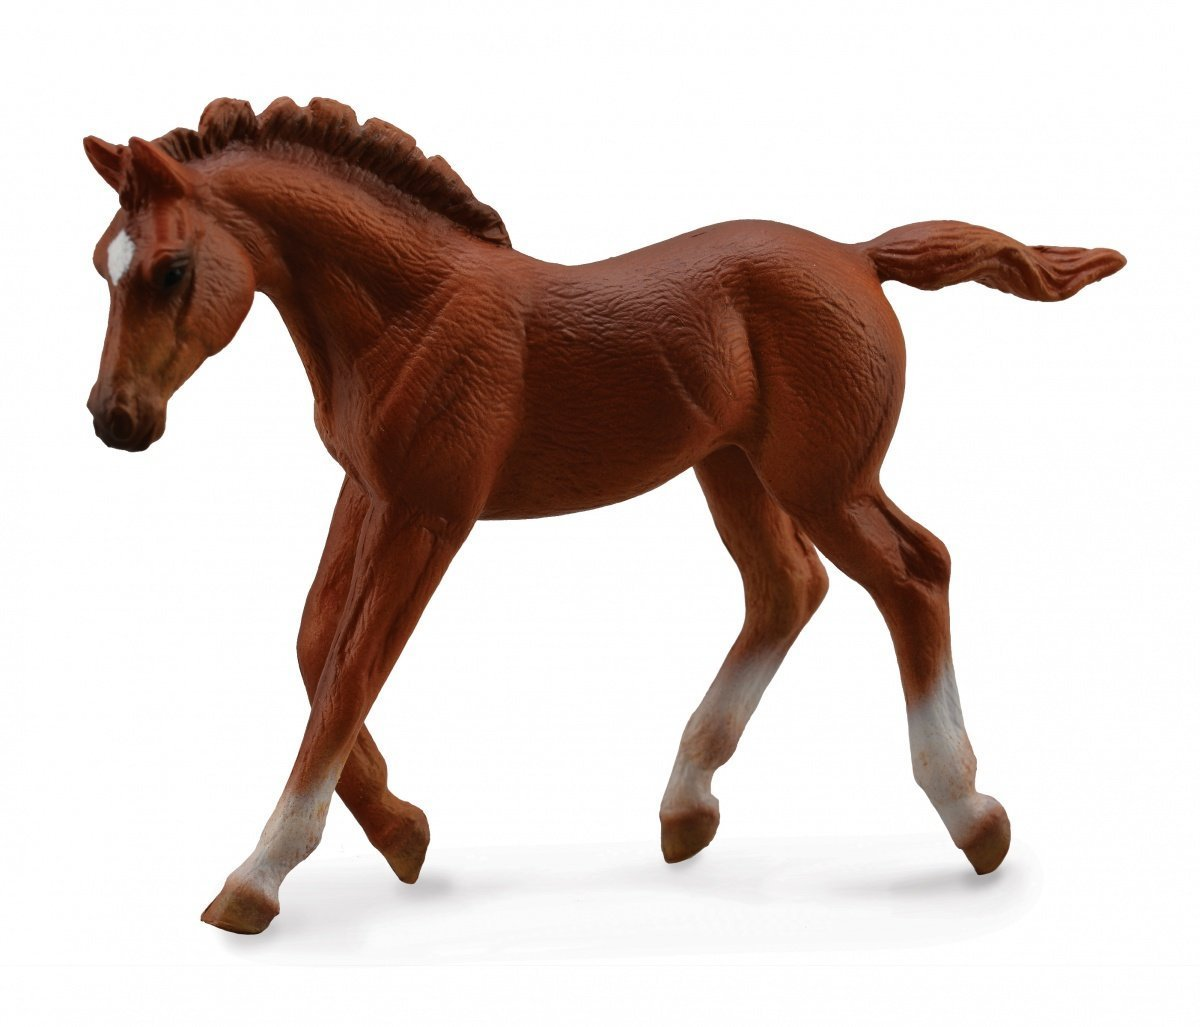 CollectA - Thoroughbred Foal (Walking/Chestnut) image